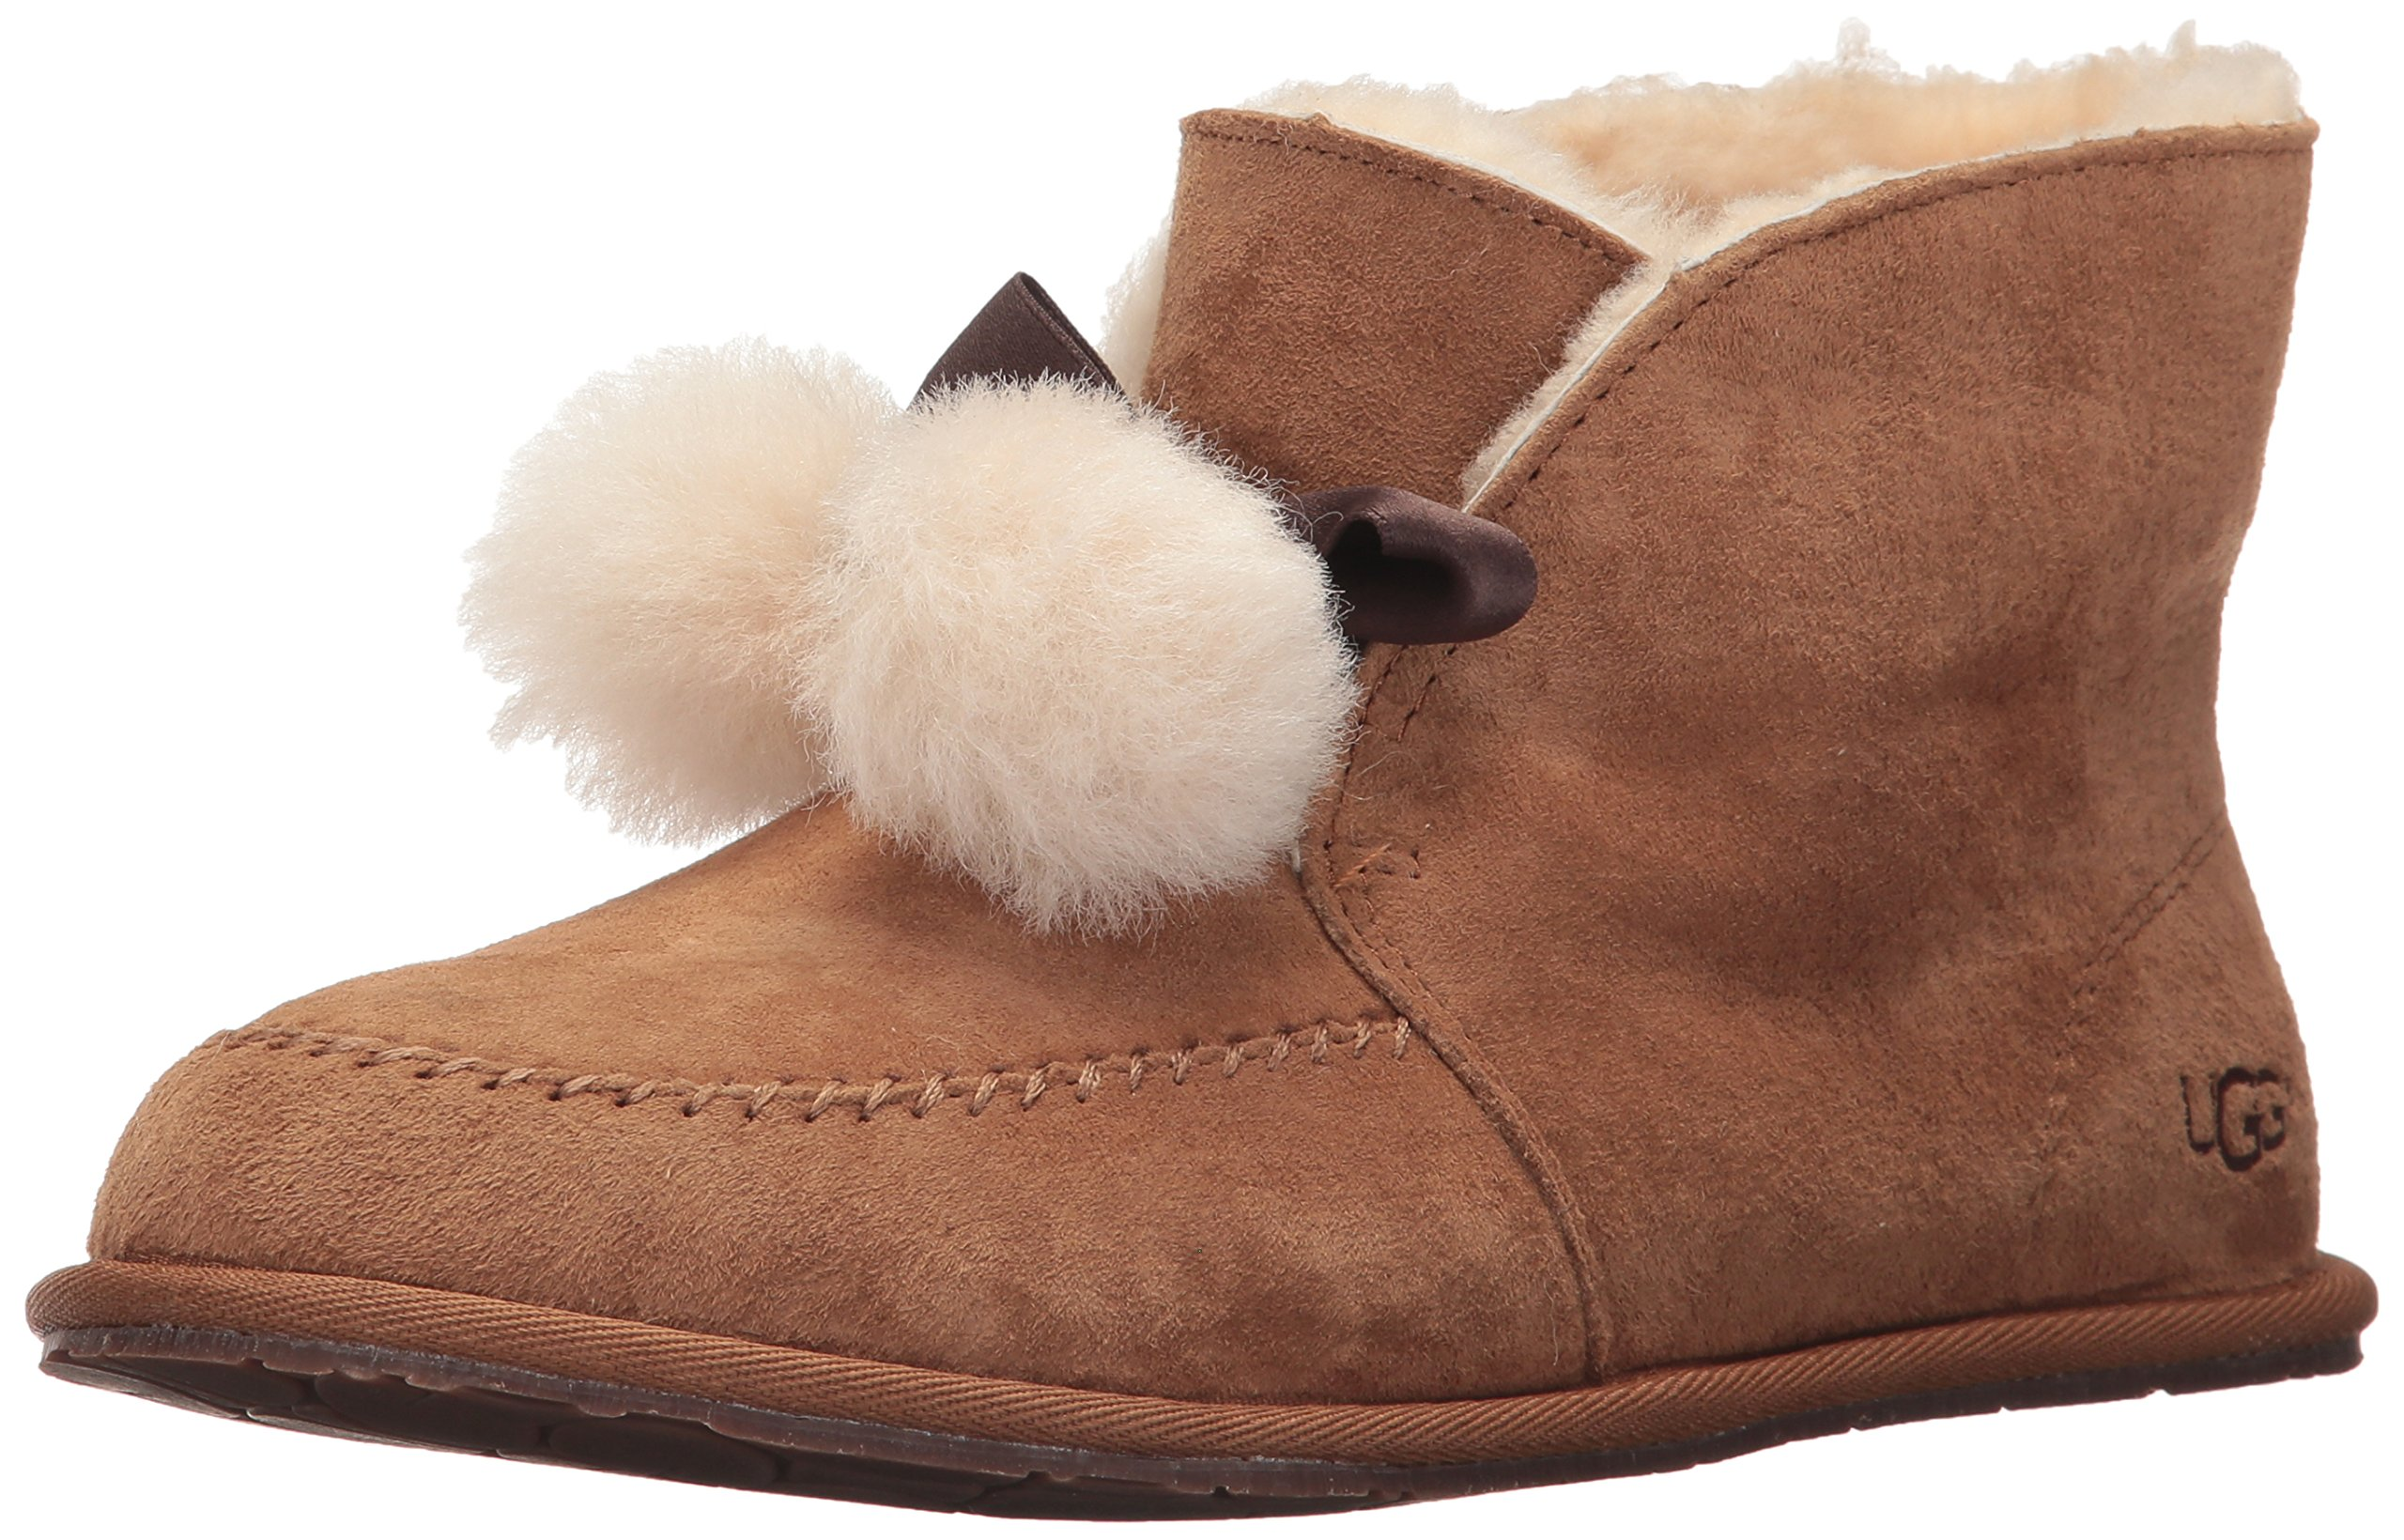 UGG Women's Kallen Slouch Boot, Chestnut, 8 M US by UGG (Image #1)